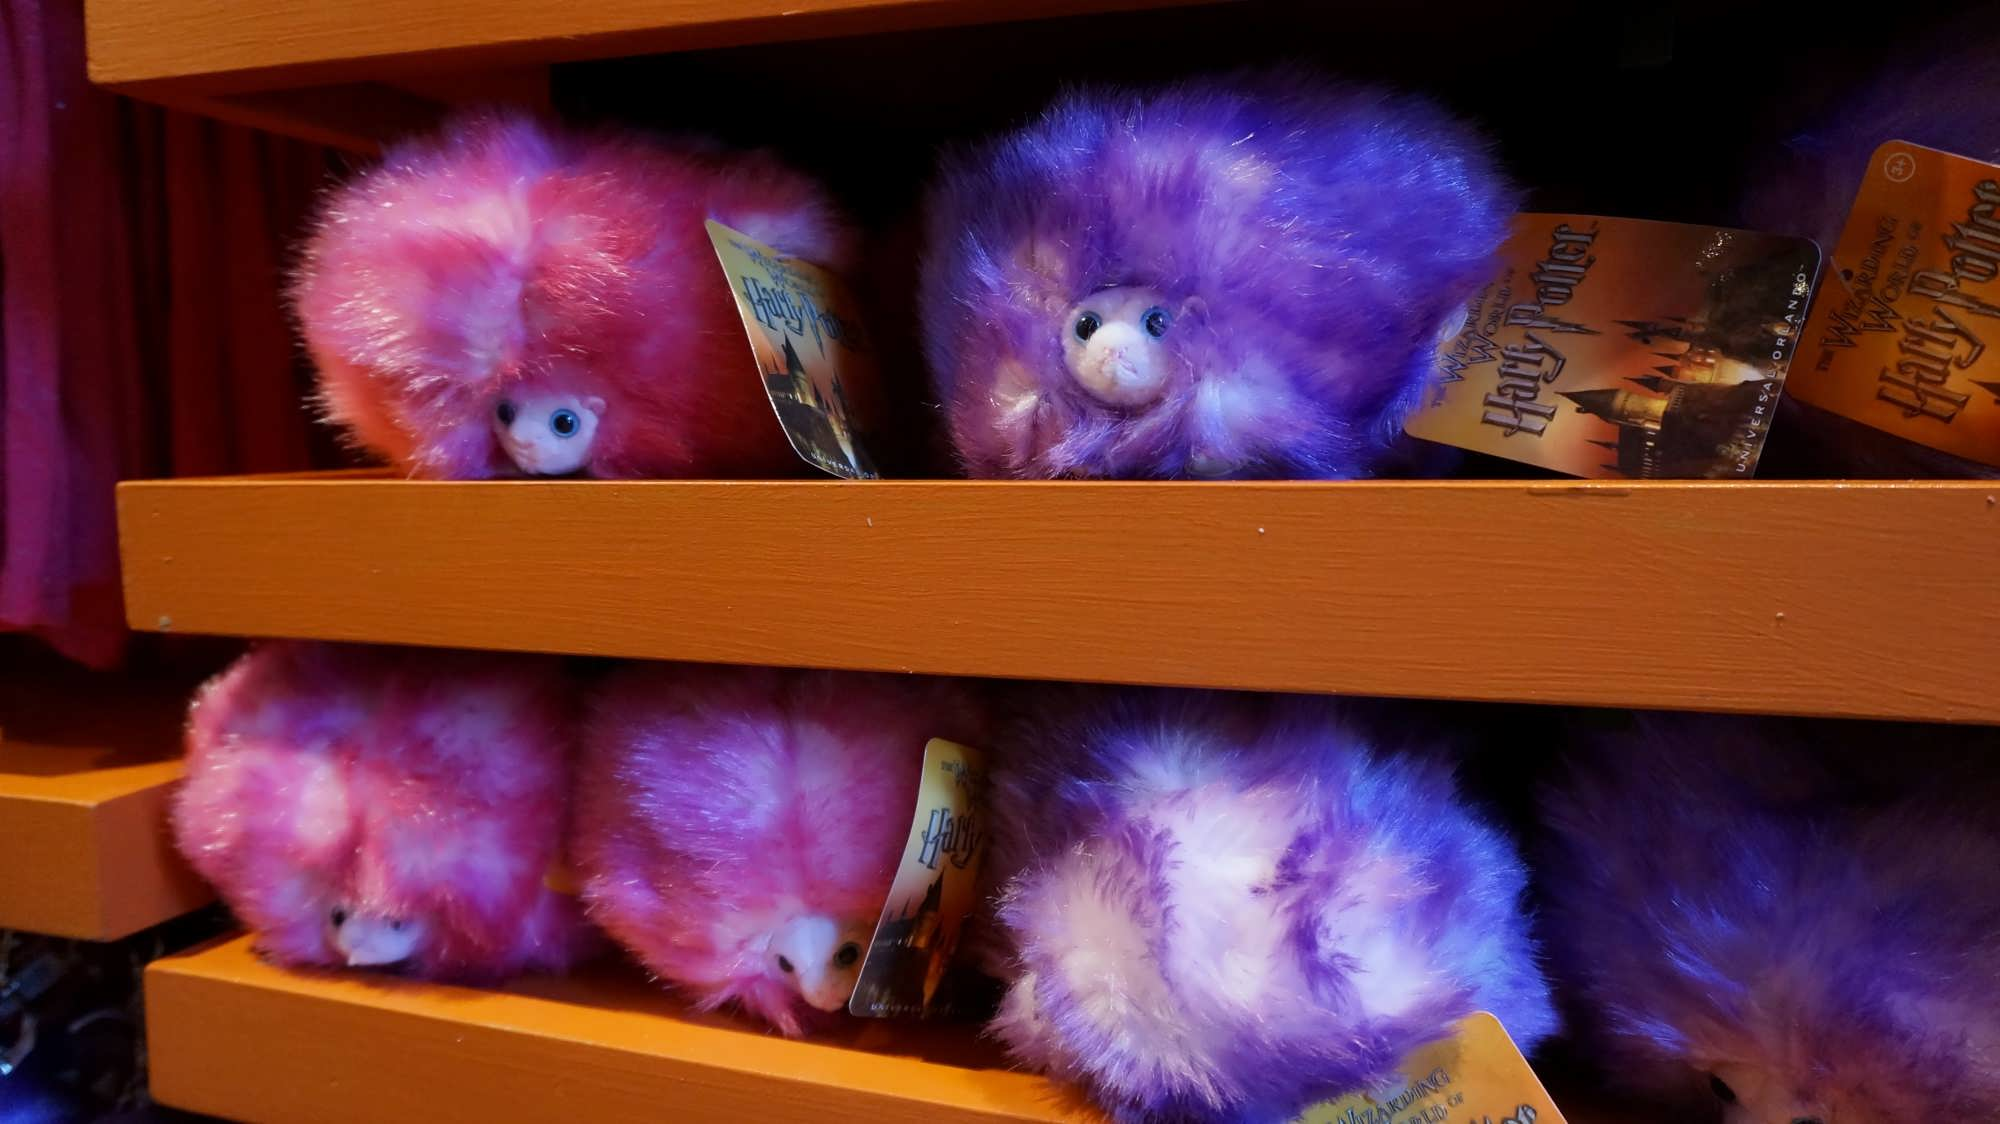 Pygmy Puffs at Weasleys' Wizard Wheezes in the Wizarding World of Harry Potter - Diagon Alley